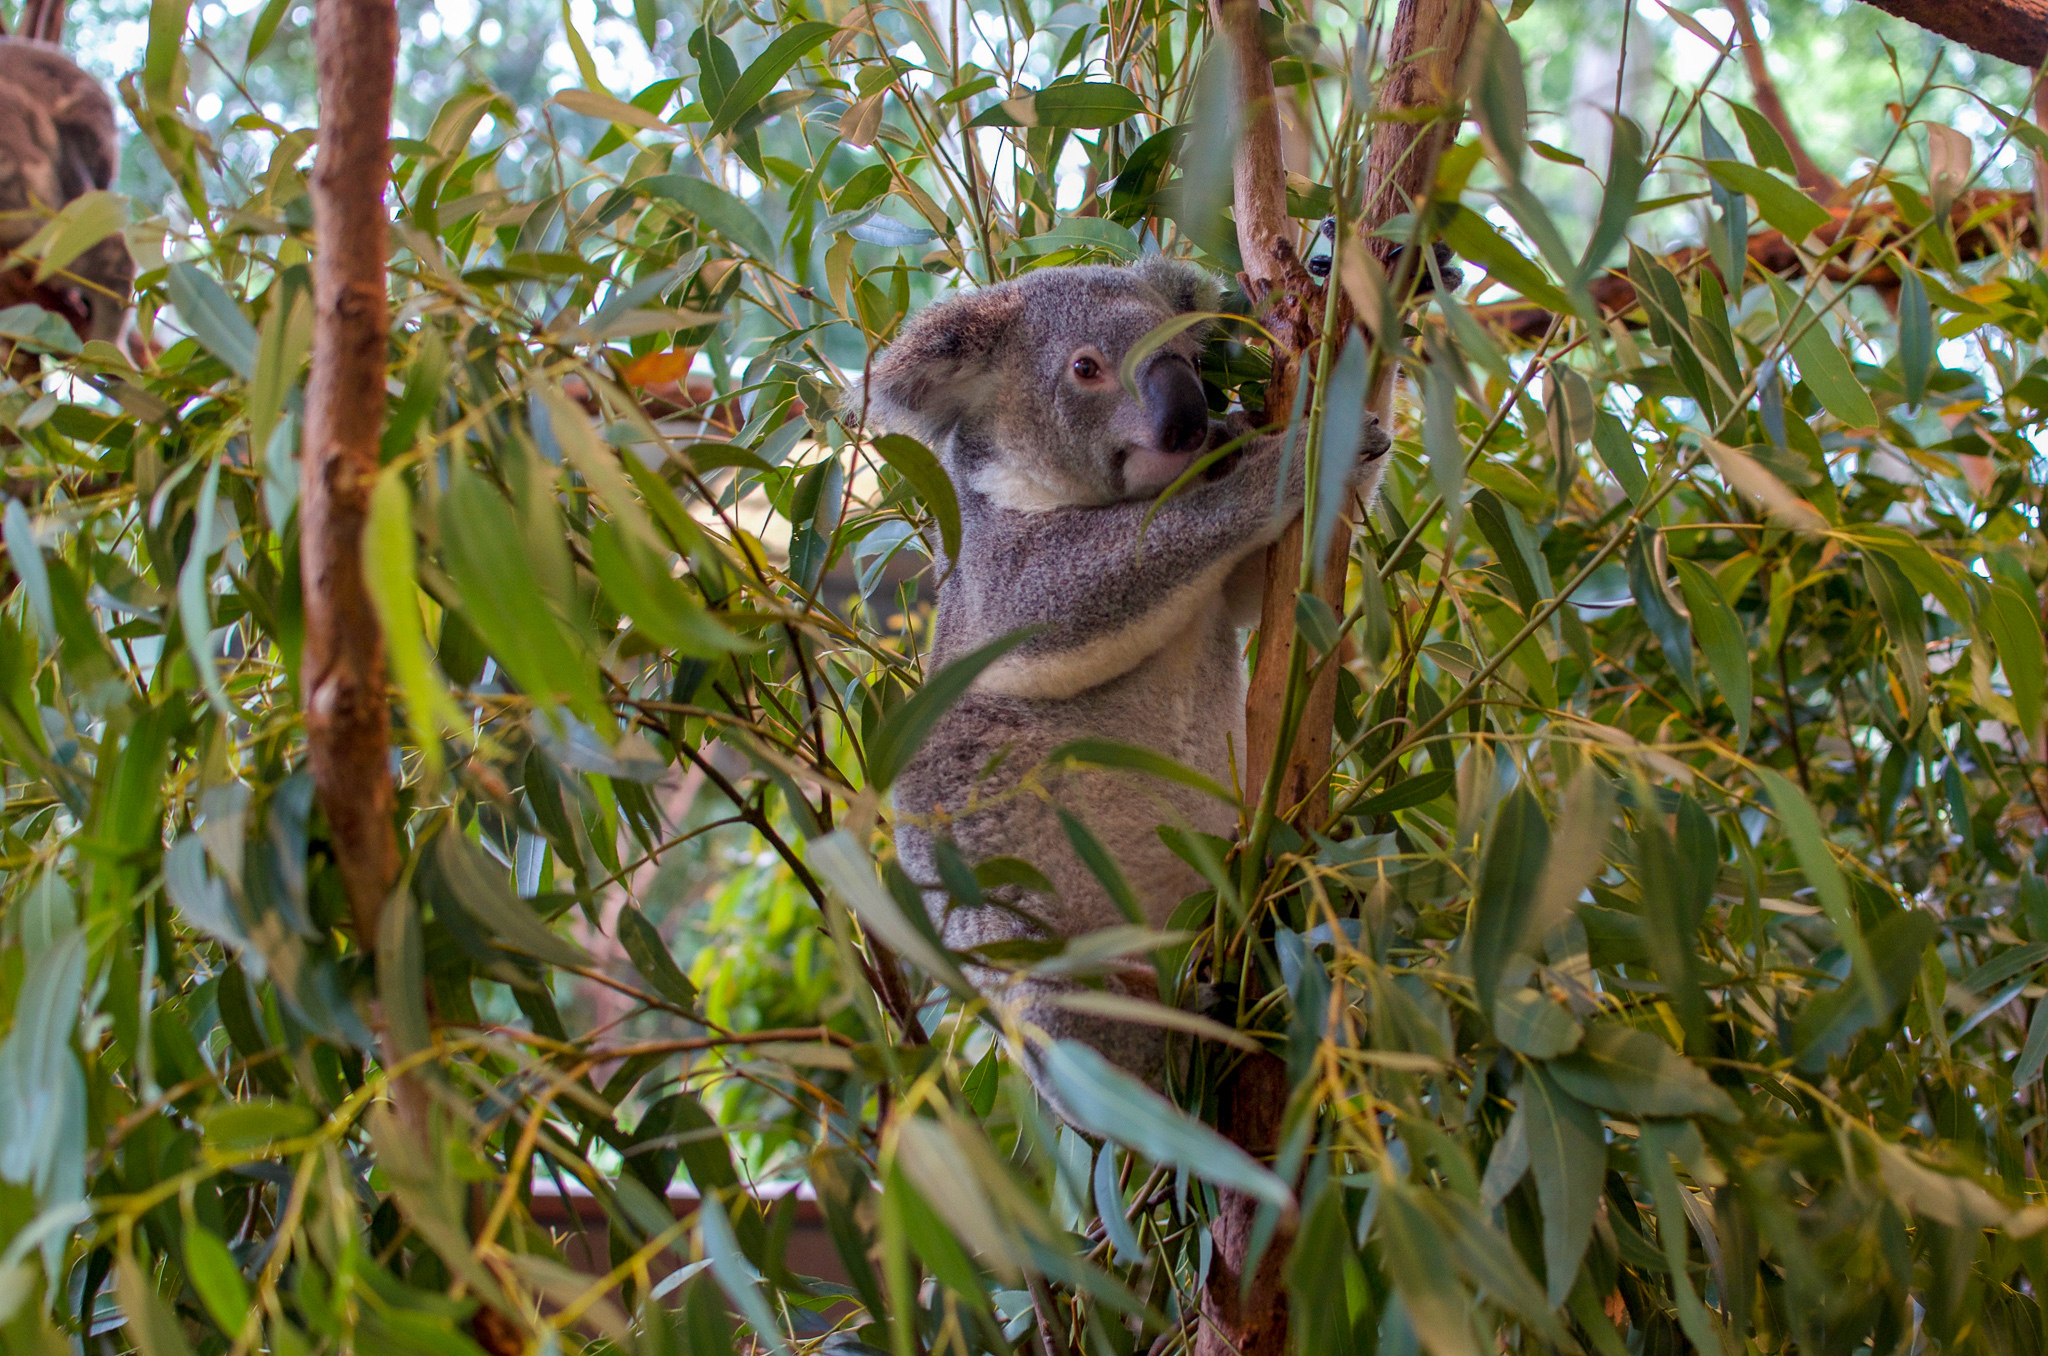 Koala hiding partially hidden behind eucalyptus leaves, holding onto a branch